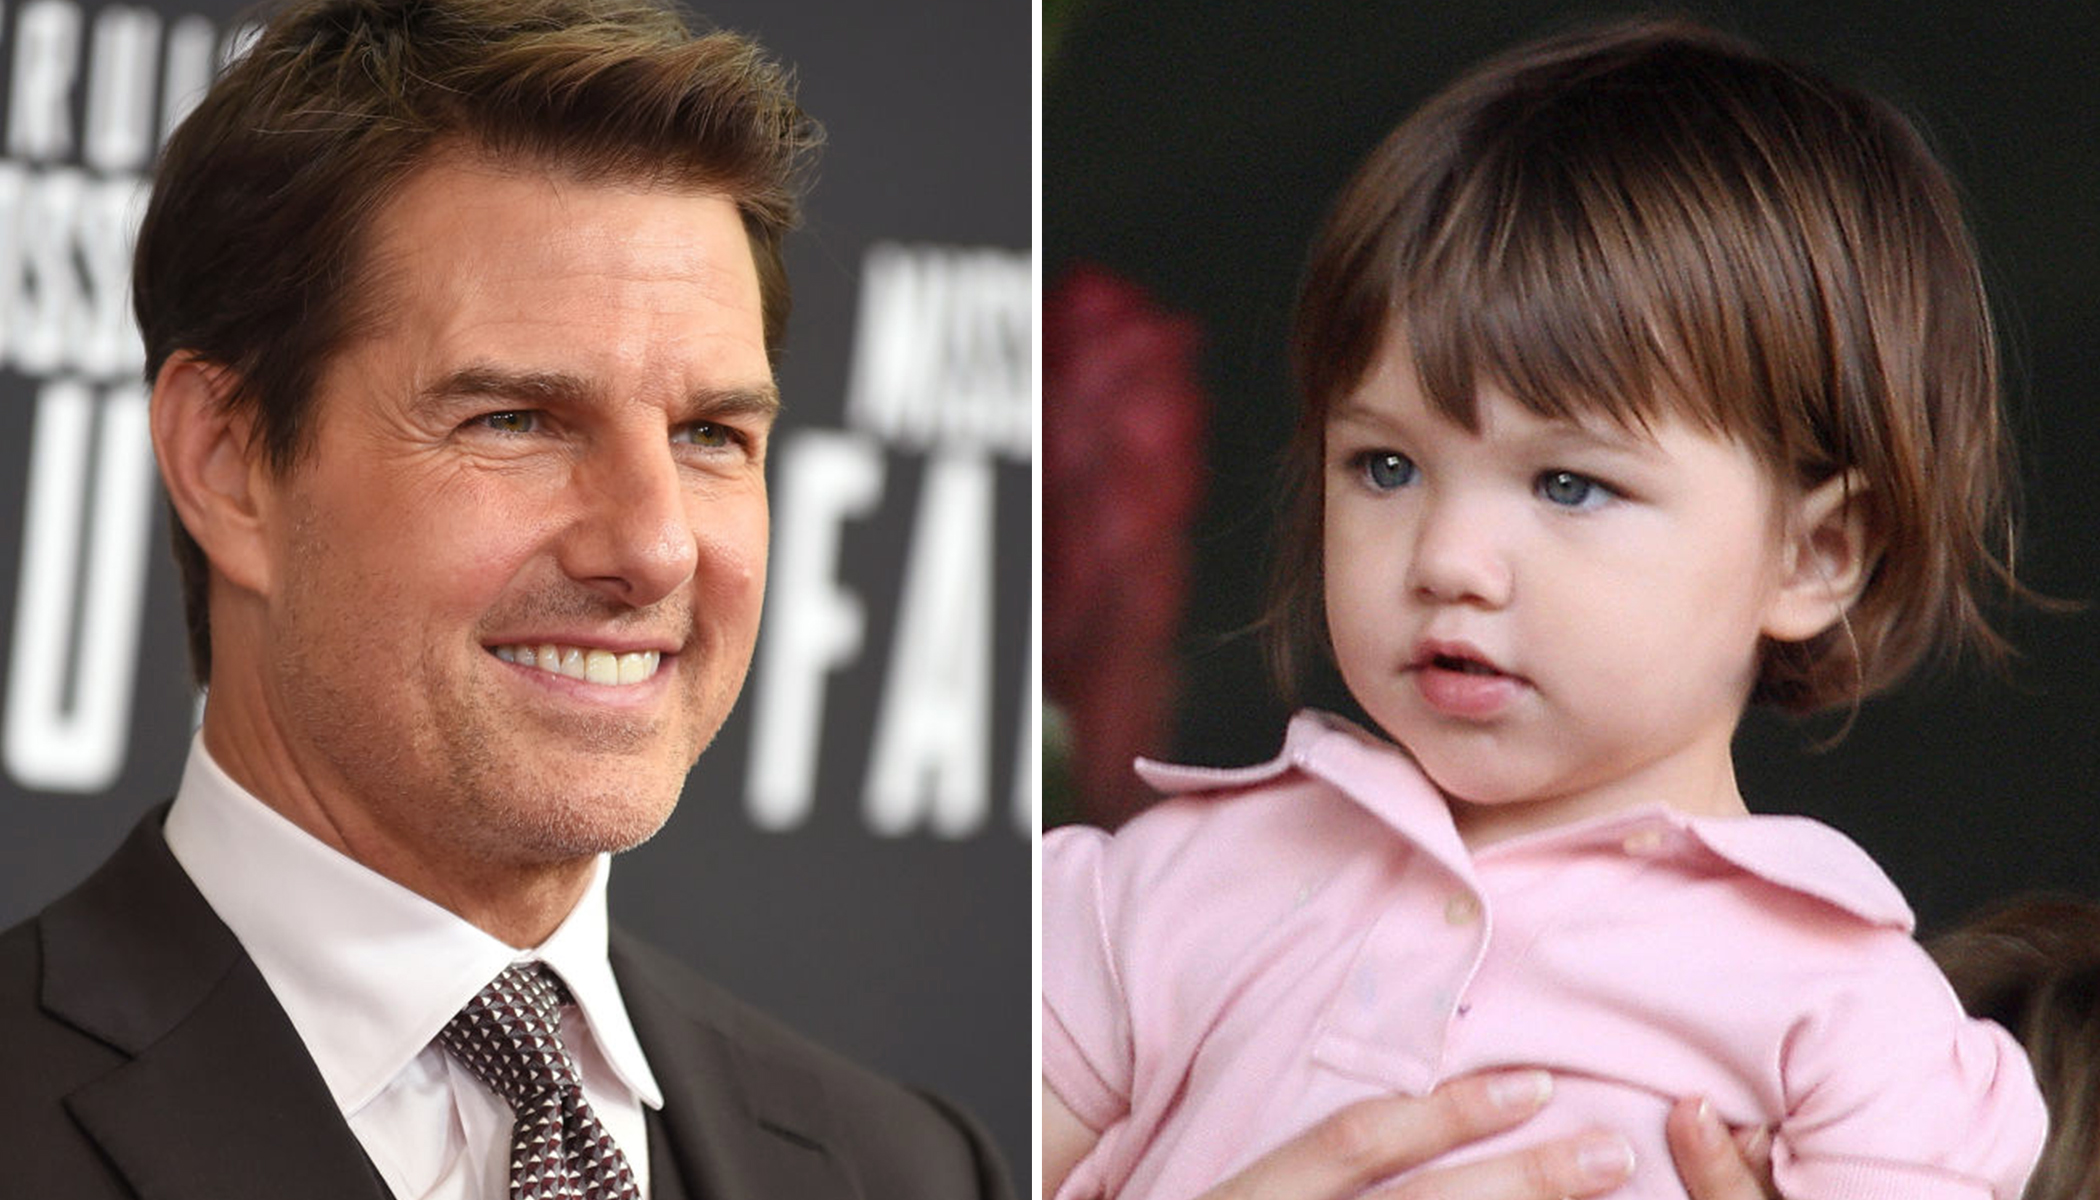 Tom Cruise's Daughter Suri Is 13 Years Old, and She Looks So Much Like Her Iconic Dad